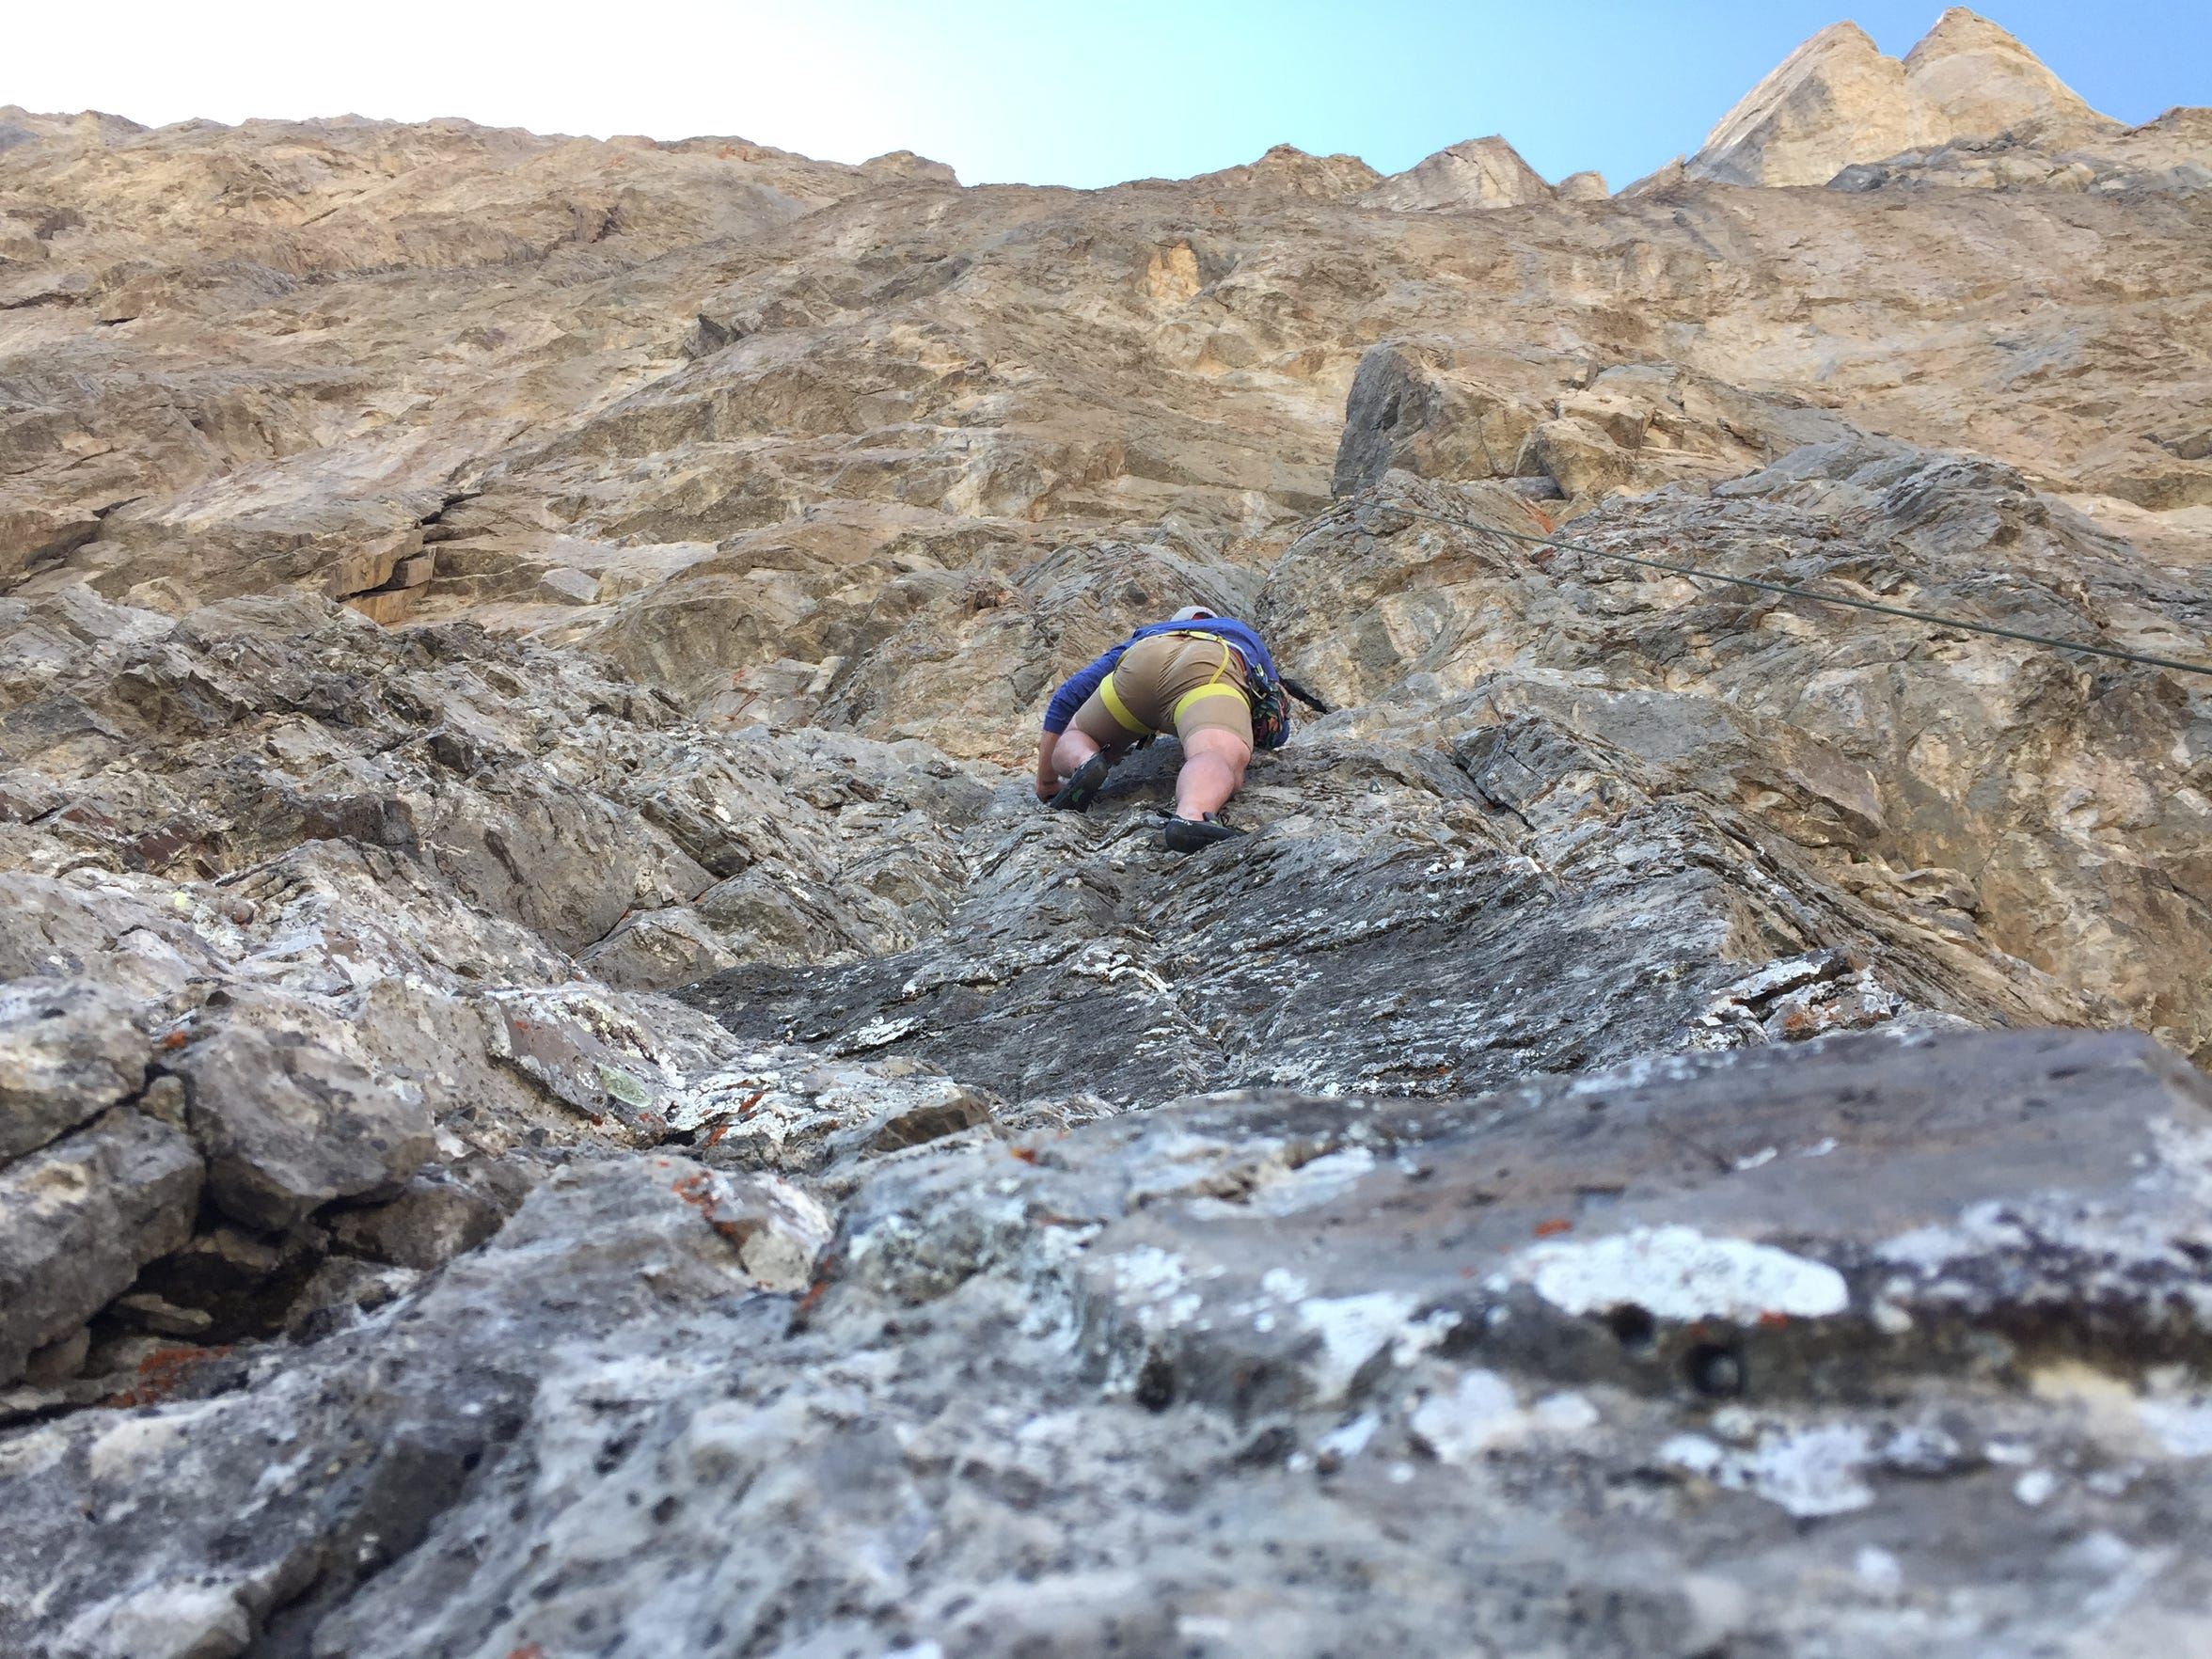 Jake Bash makes the first climb of the day in the Blackleaf